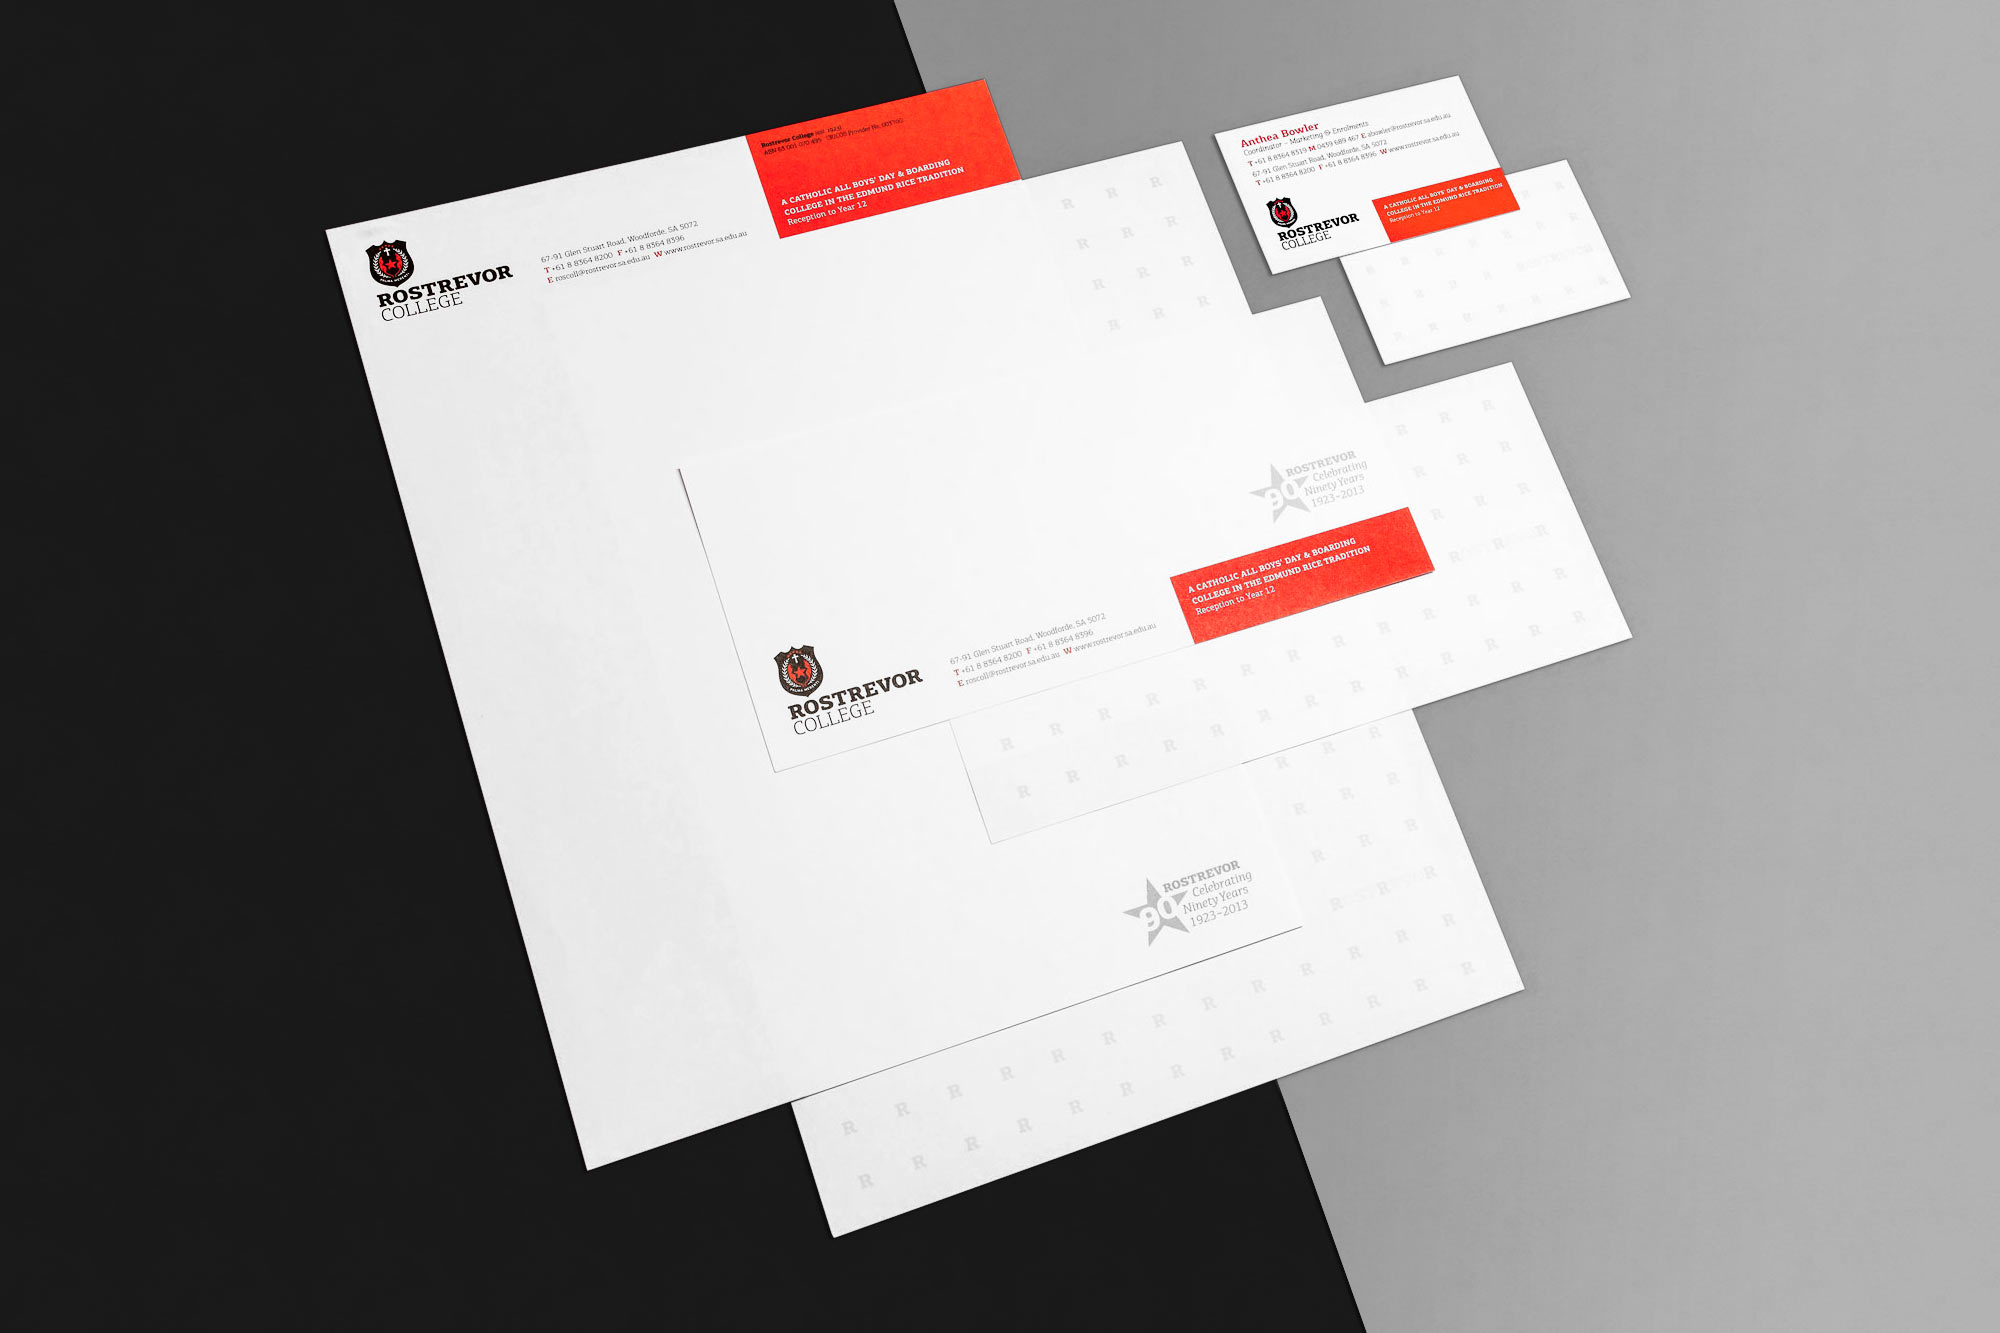 Rostrevor College stationery and branding image